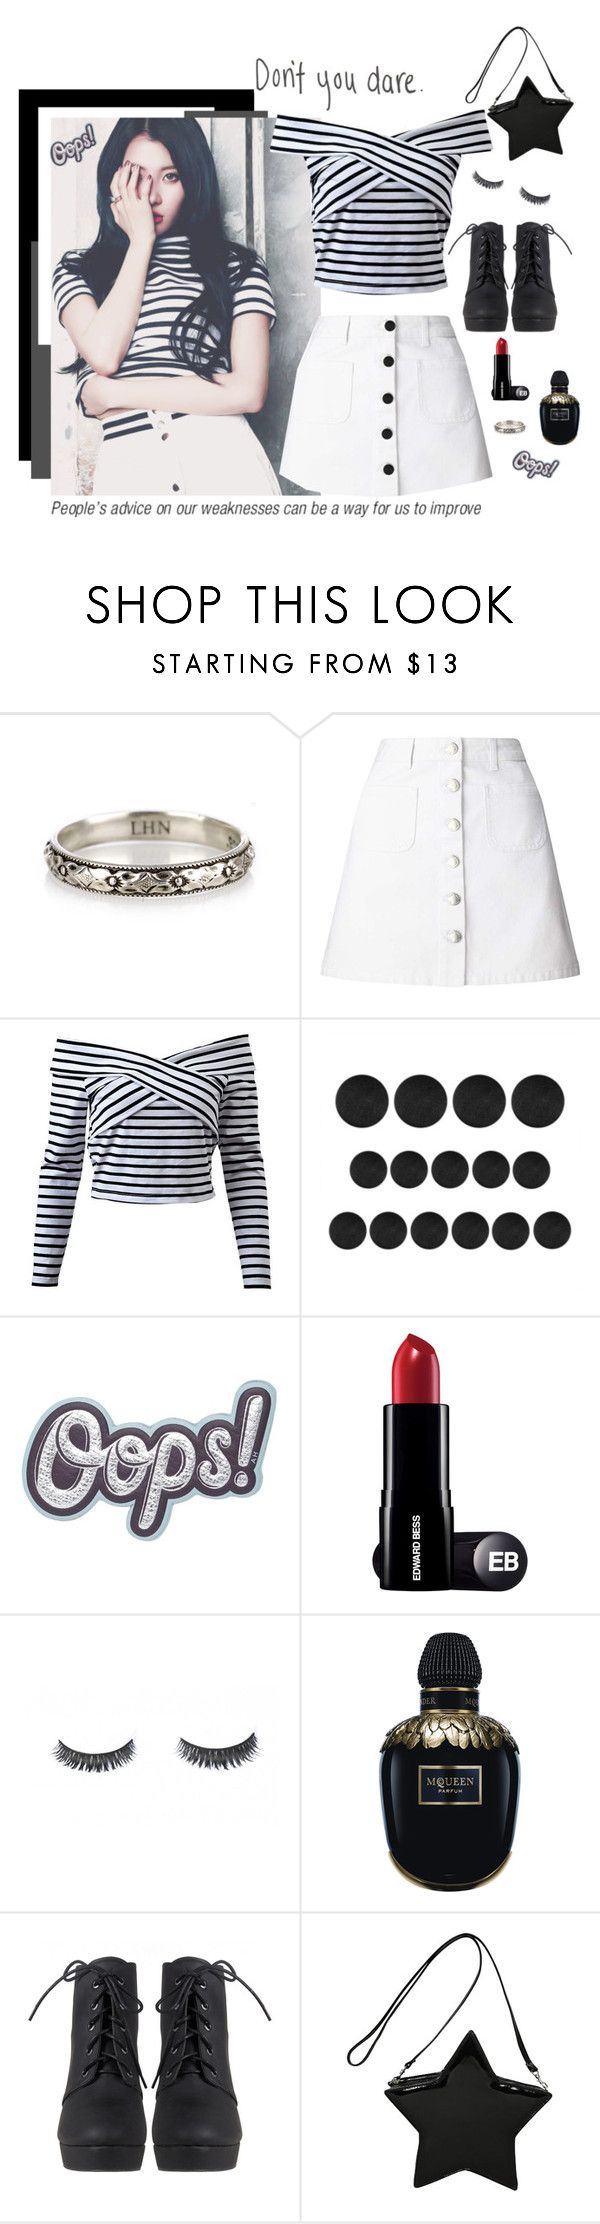 """""""Get the look (Sunmi)"""" by gisfriends ❤ liked on Polyvore featuring Miss Selfridge, Anya Hindmarch, Alexander McQueen and vintage"""